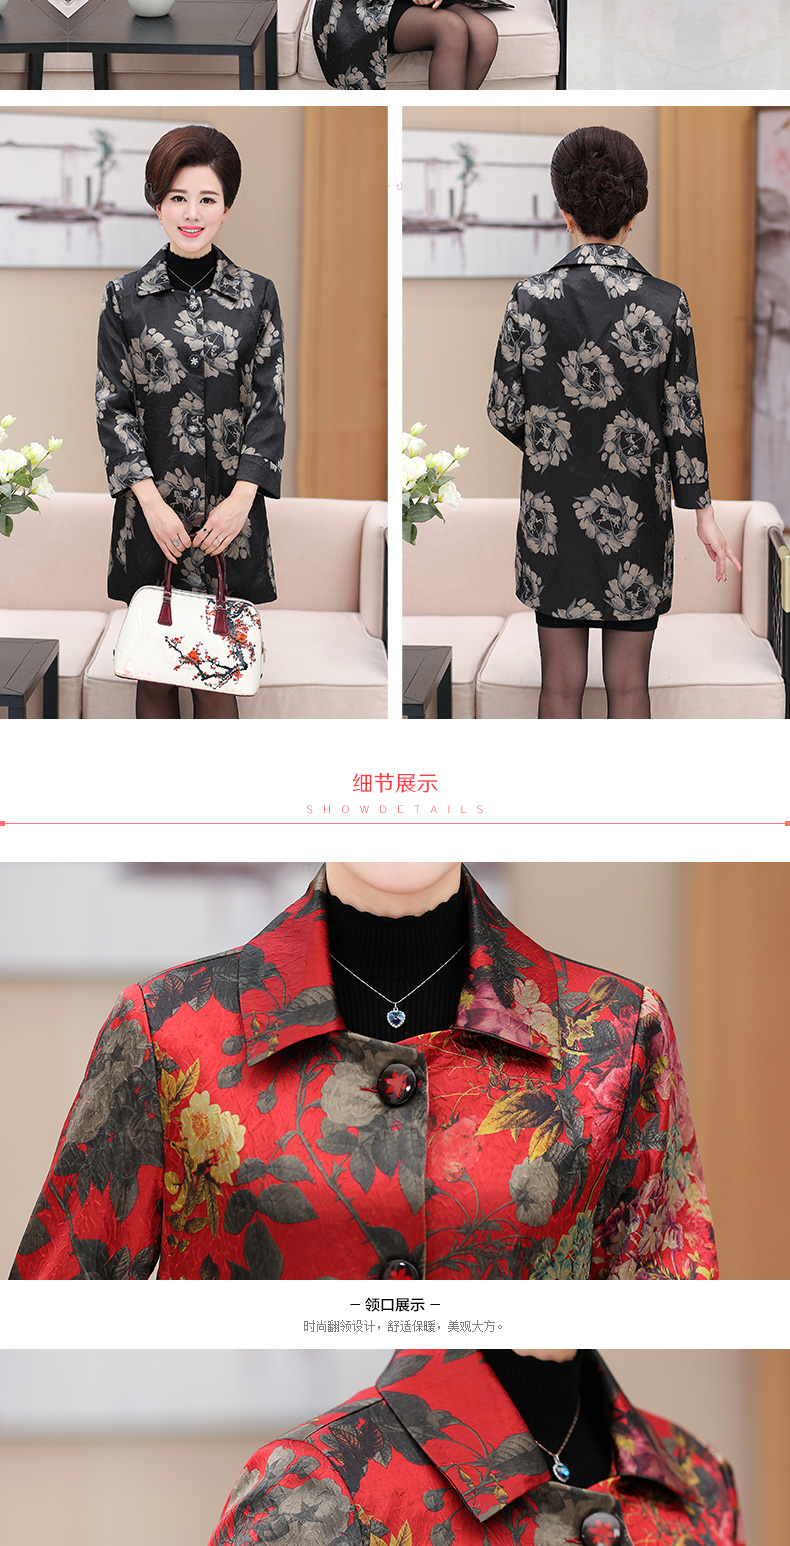 Chinese Women\'s Elegant Floral Trench Coats Single-breasted Duster Coat Matrue Woman Office Outfit Mandeau Femme Overcoats 2017 (8)